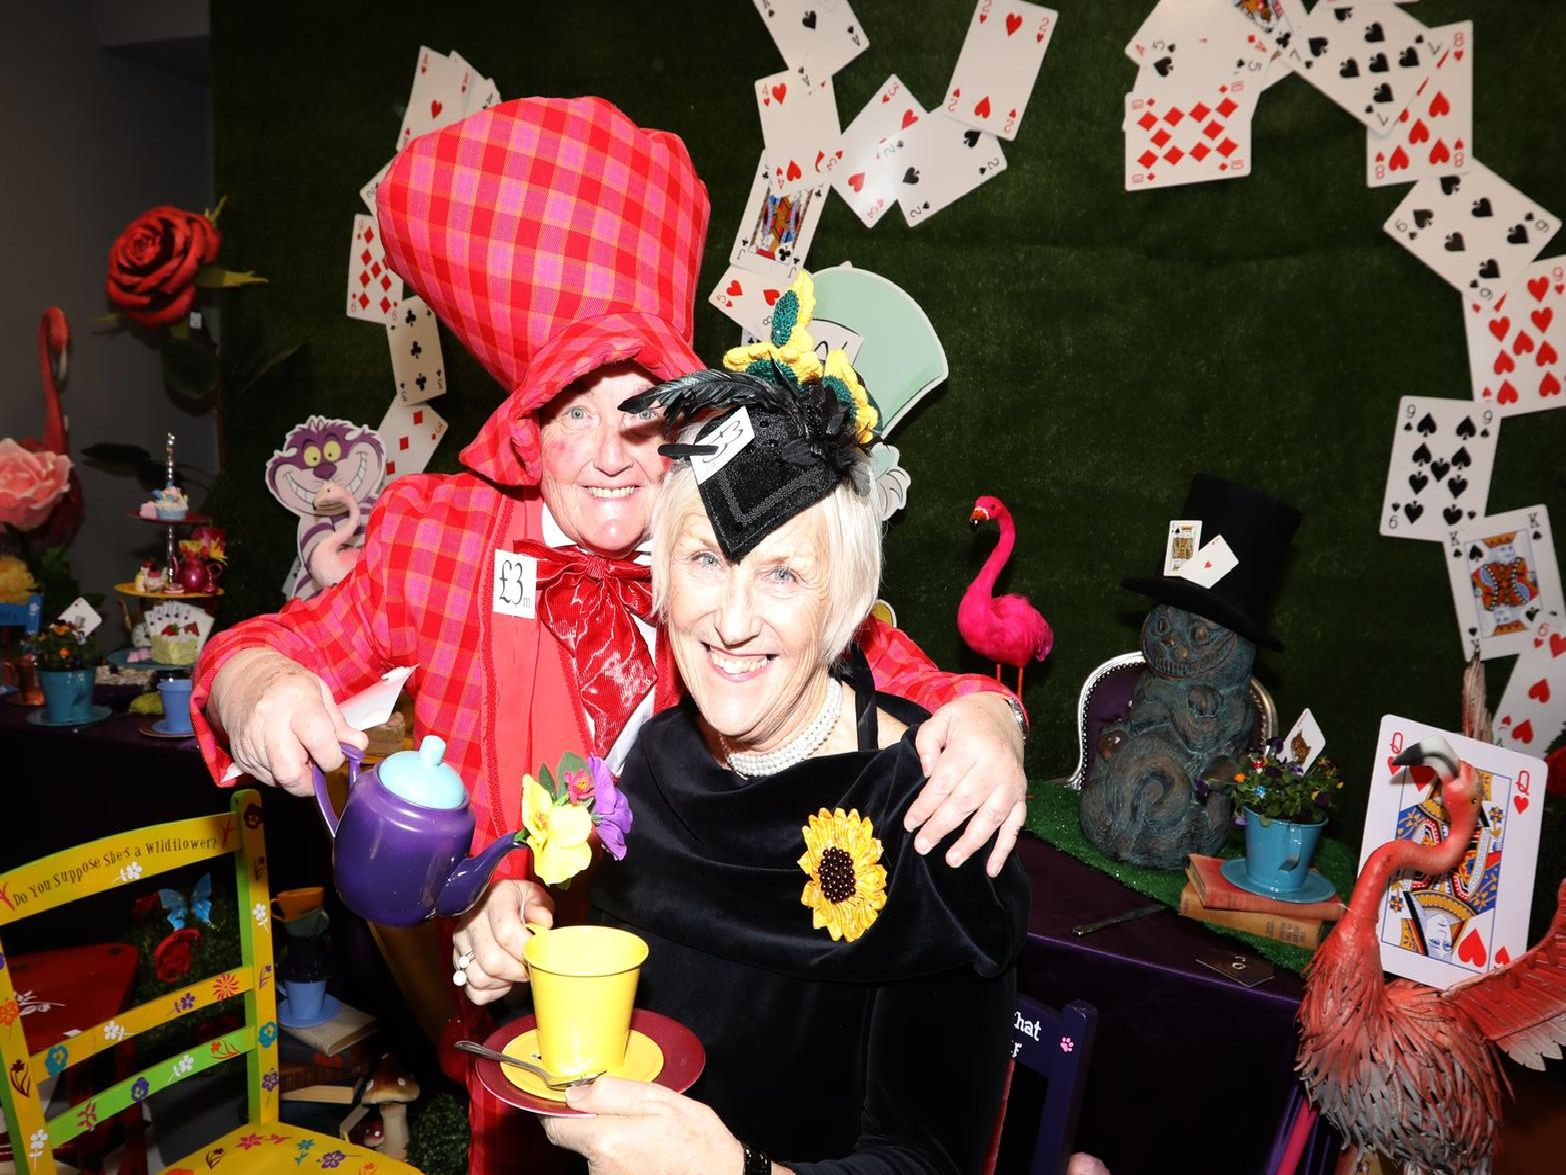 Crazy Hats held a Mad Hatter's Tea Party to celebrate raising 3m